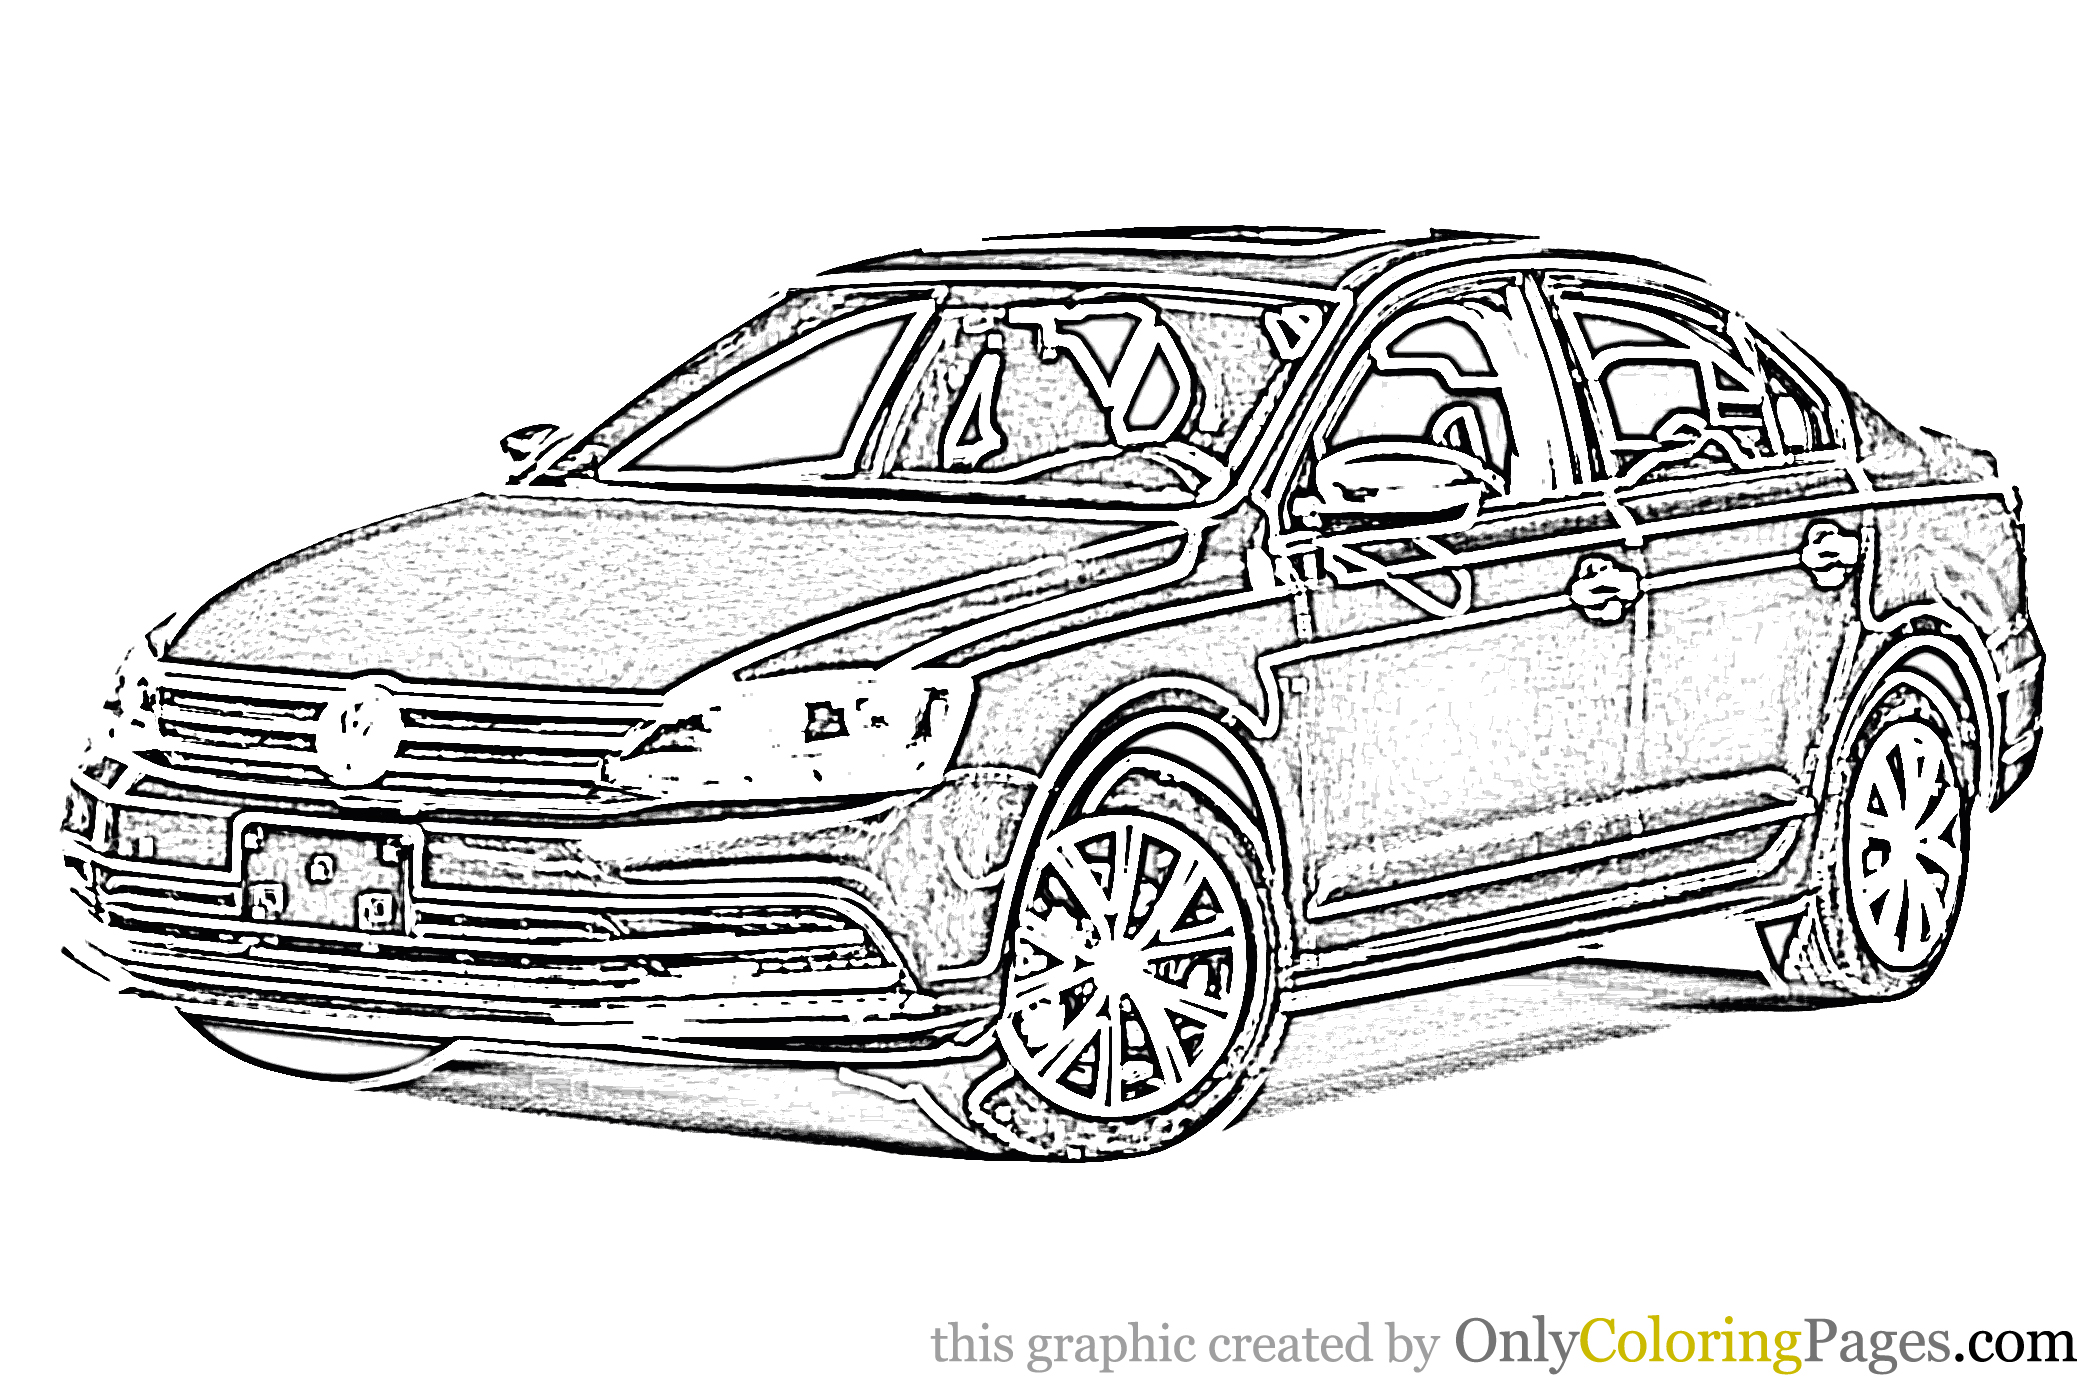 Jetta_Car_Coloring_Page